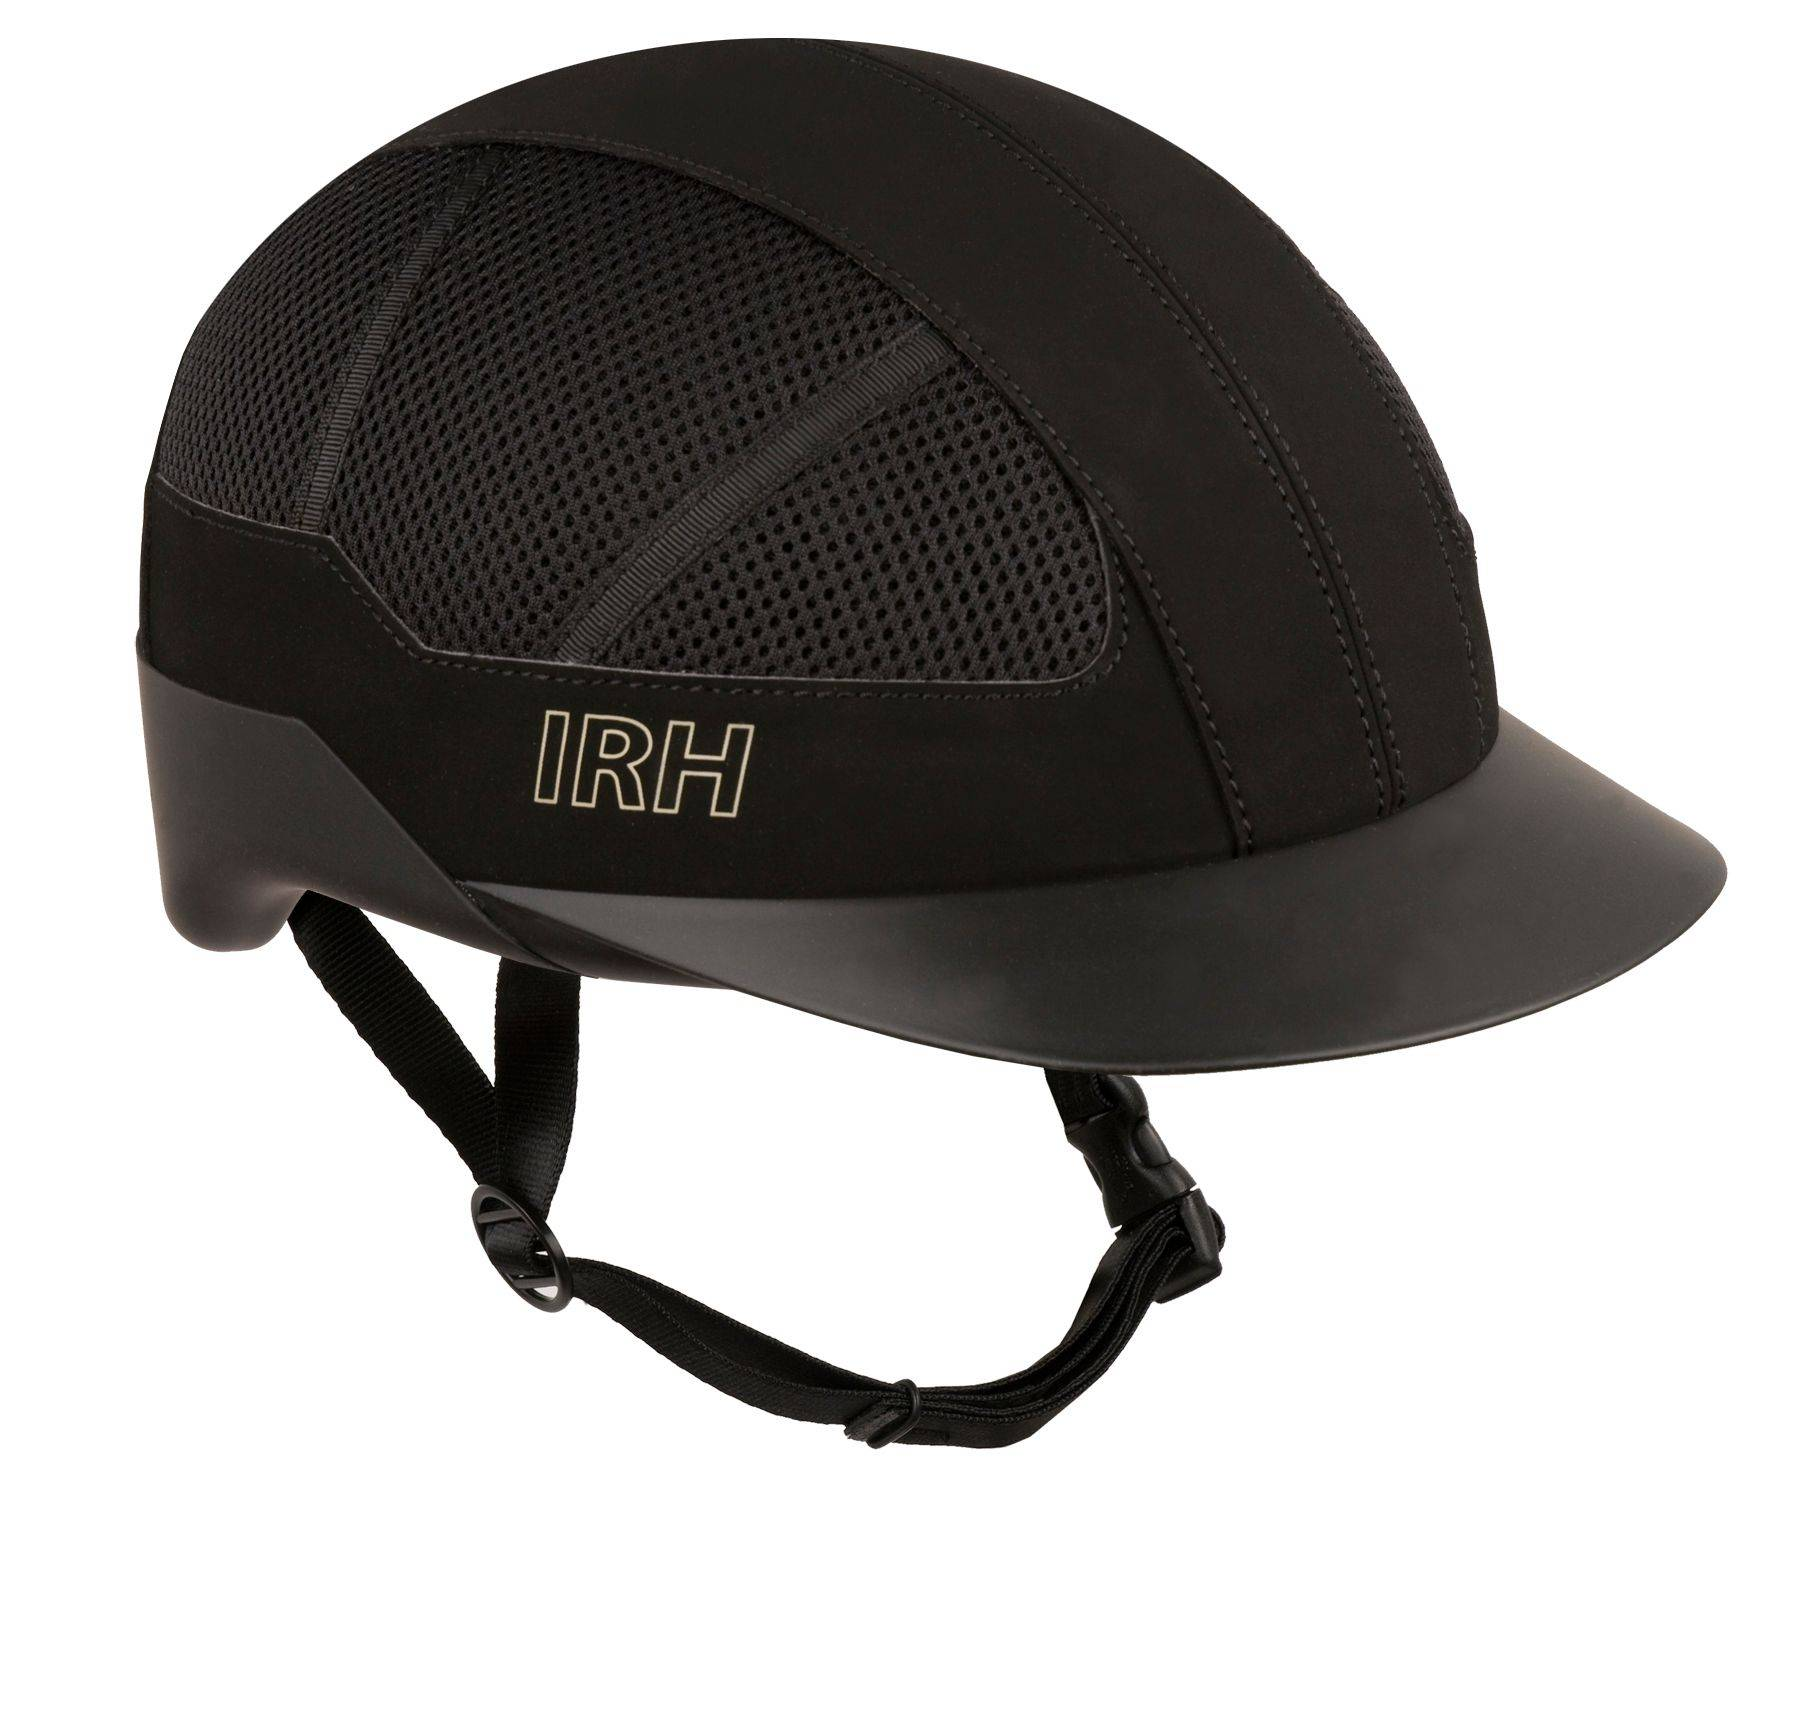 IRH All Terrain Helmet